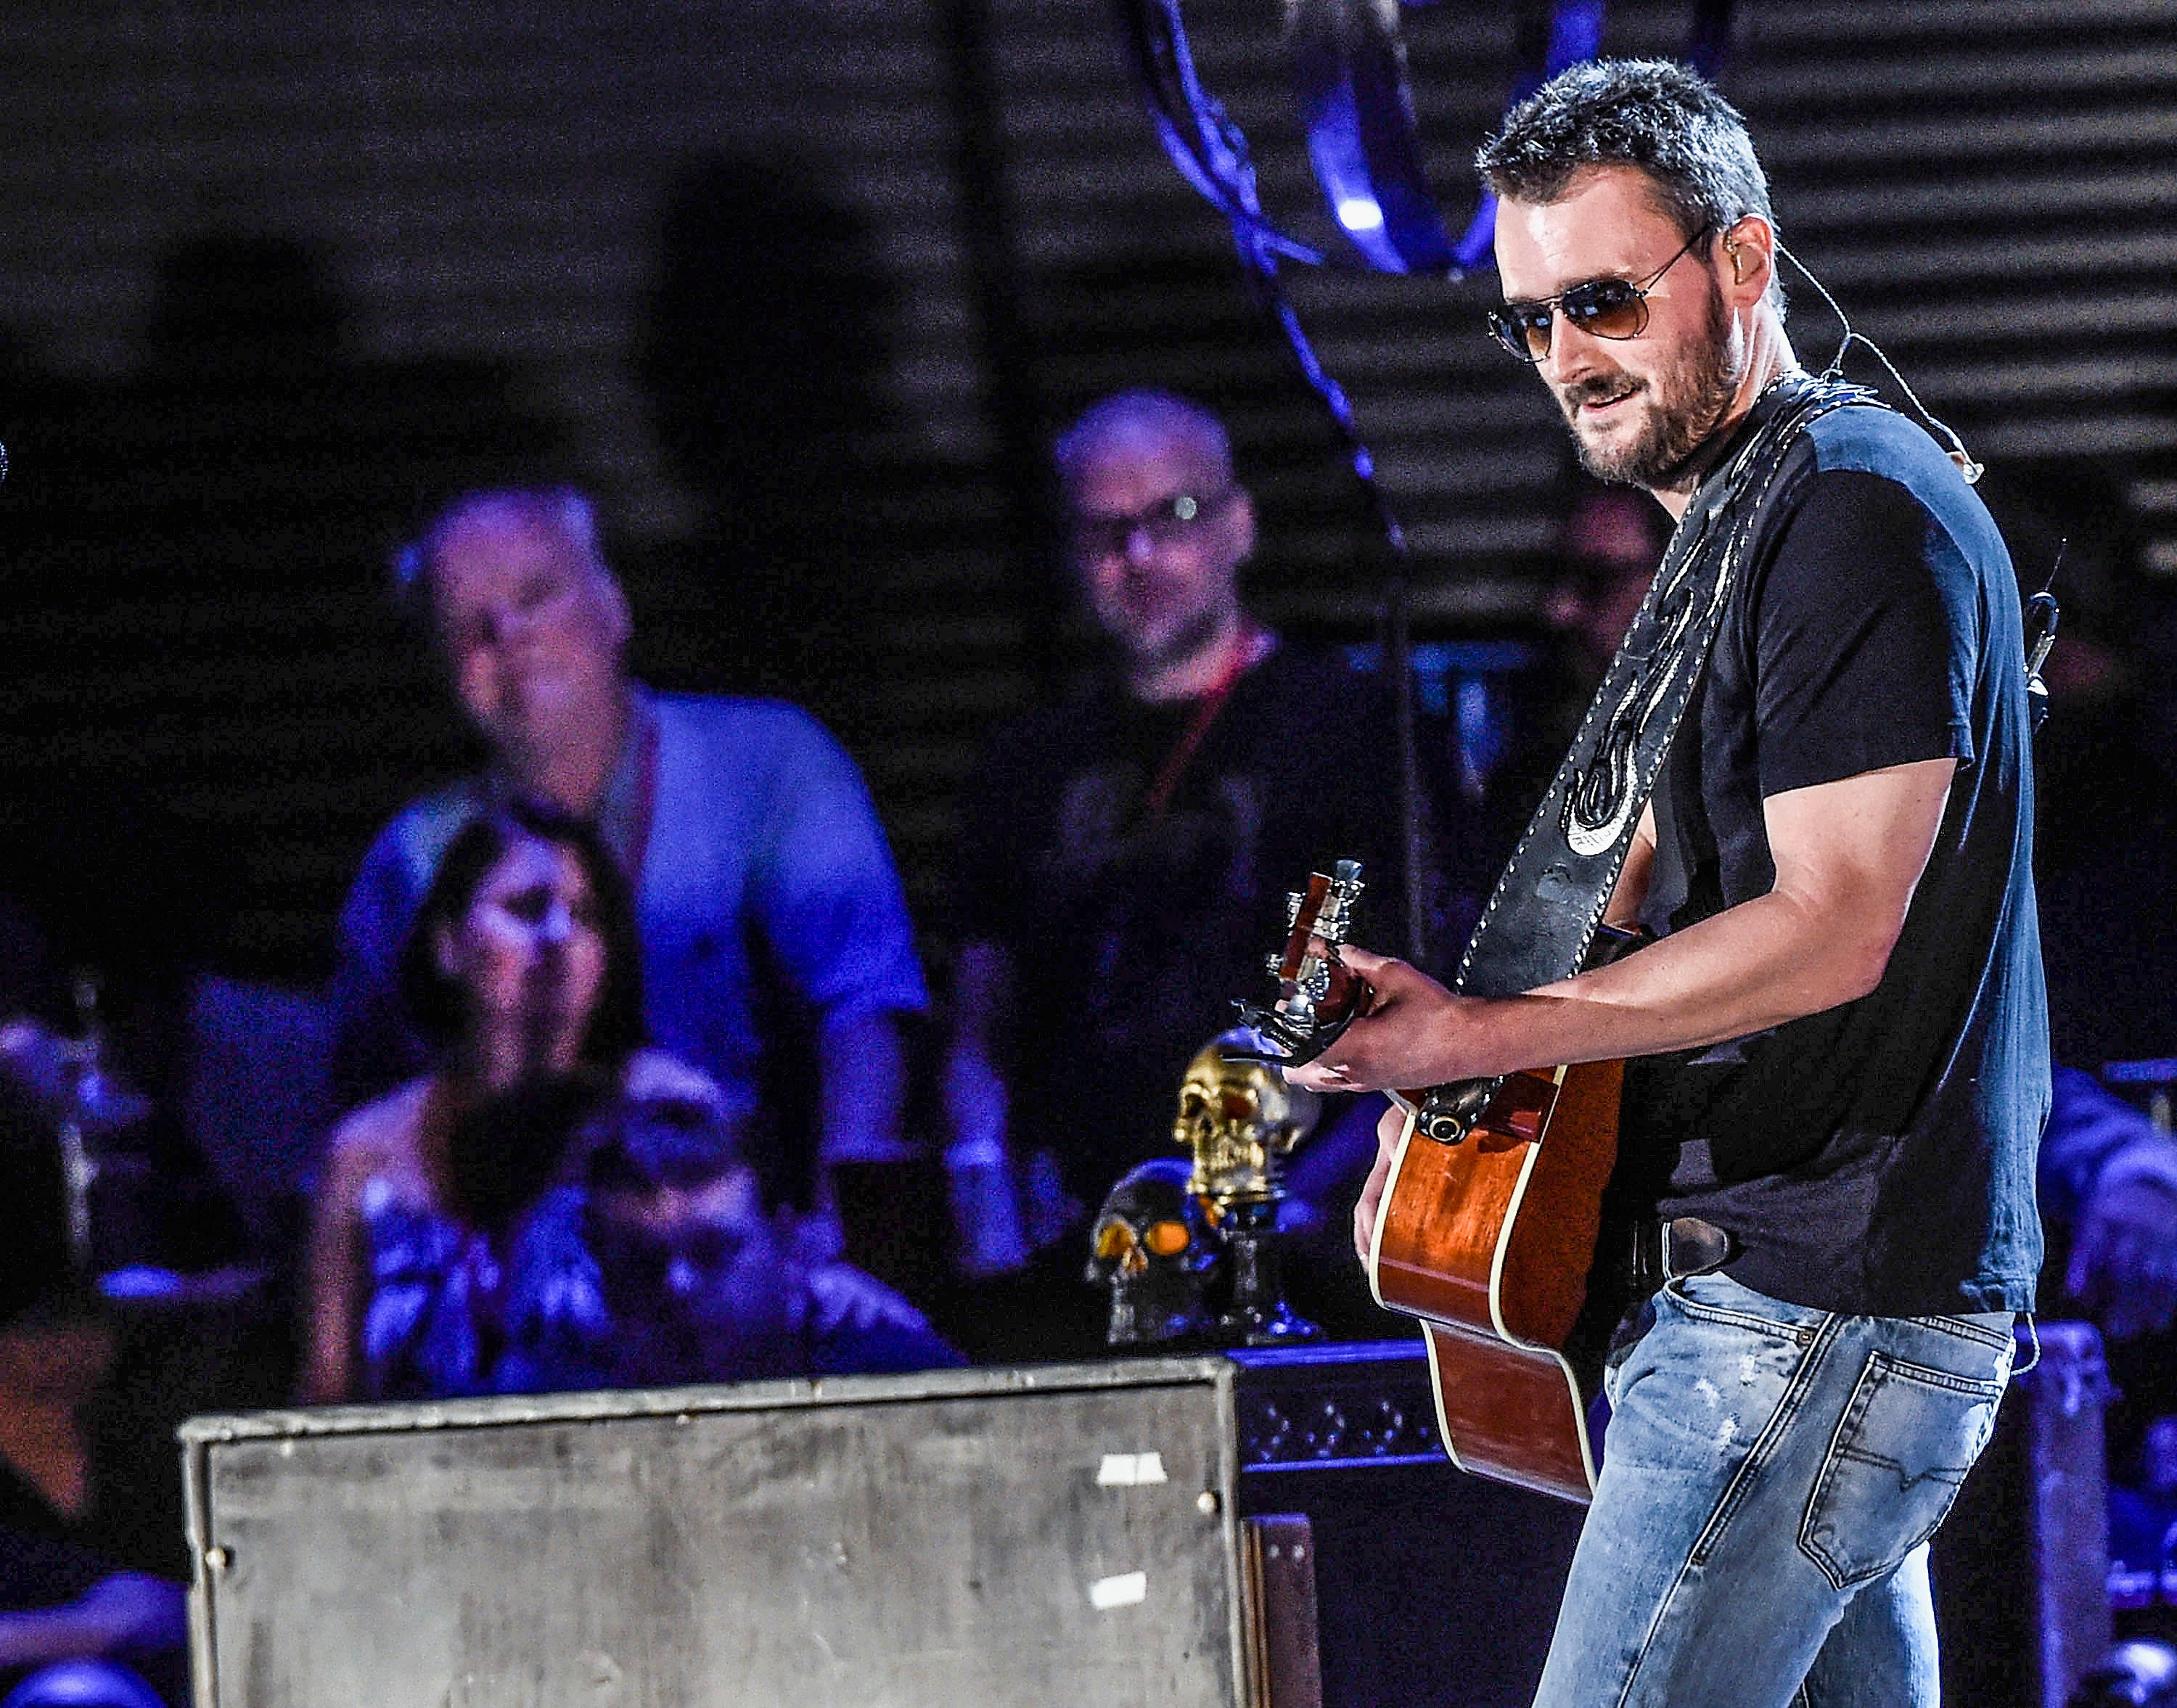 Eric Church The Outsiders Tour Songs